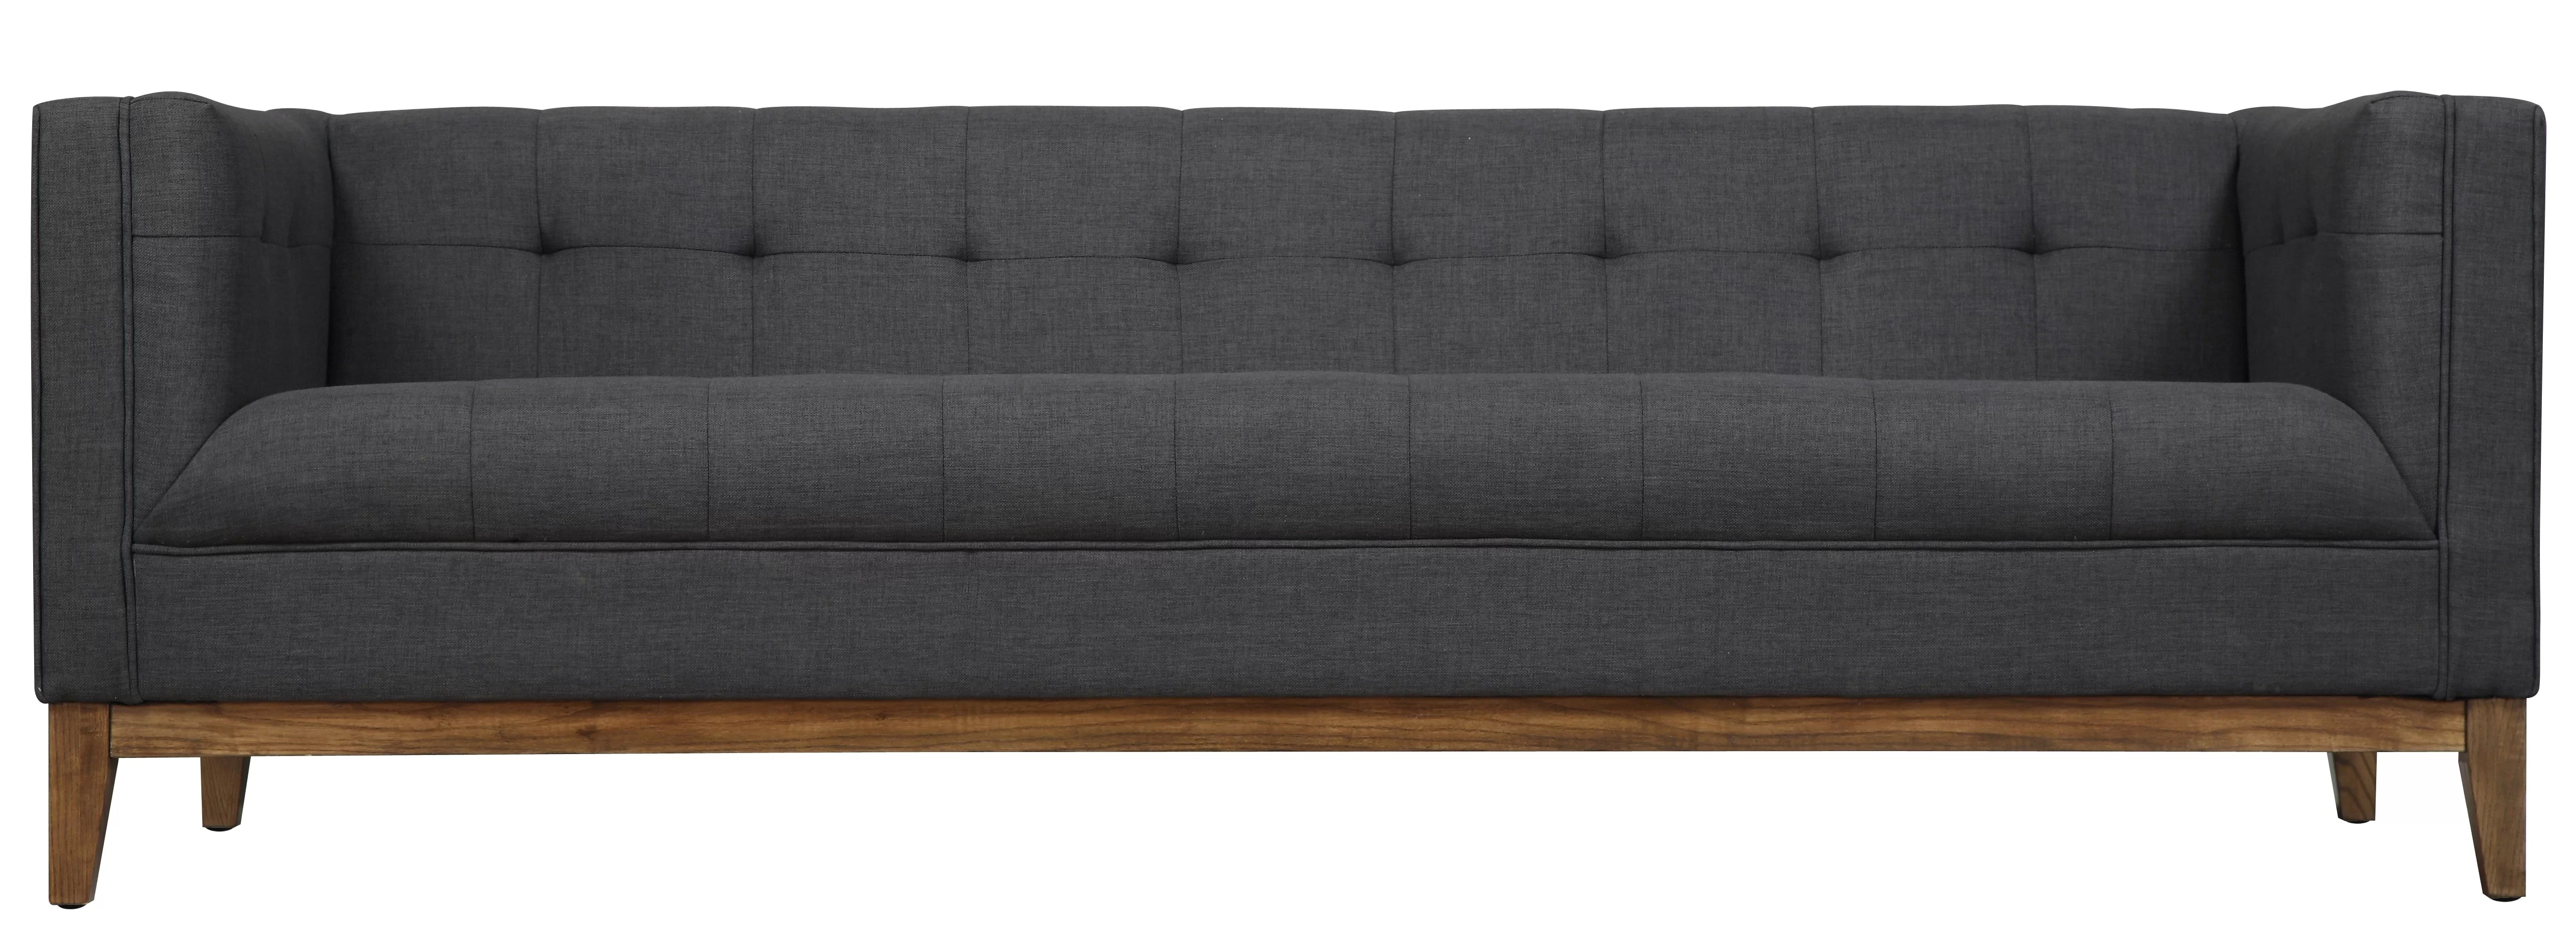 Chesterfield Lounge Hedgesville Chesterfield Sofa Reviews Allmodern